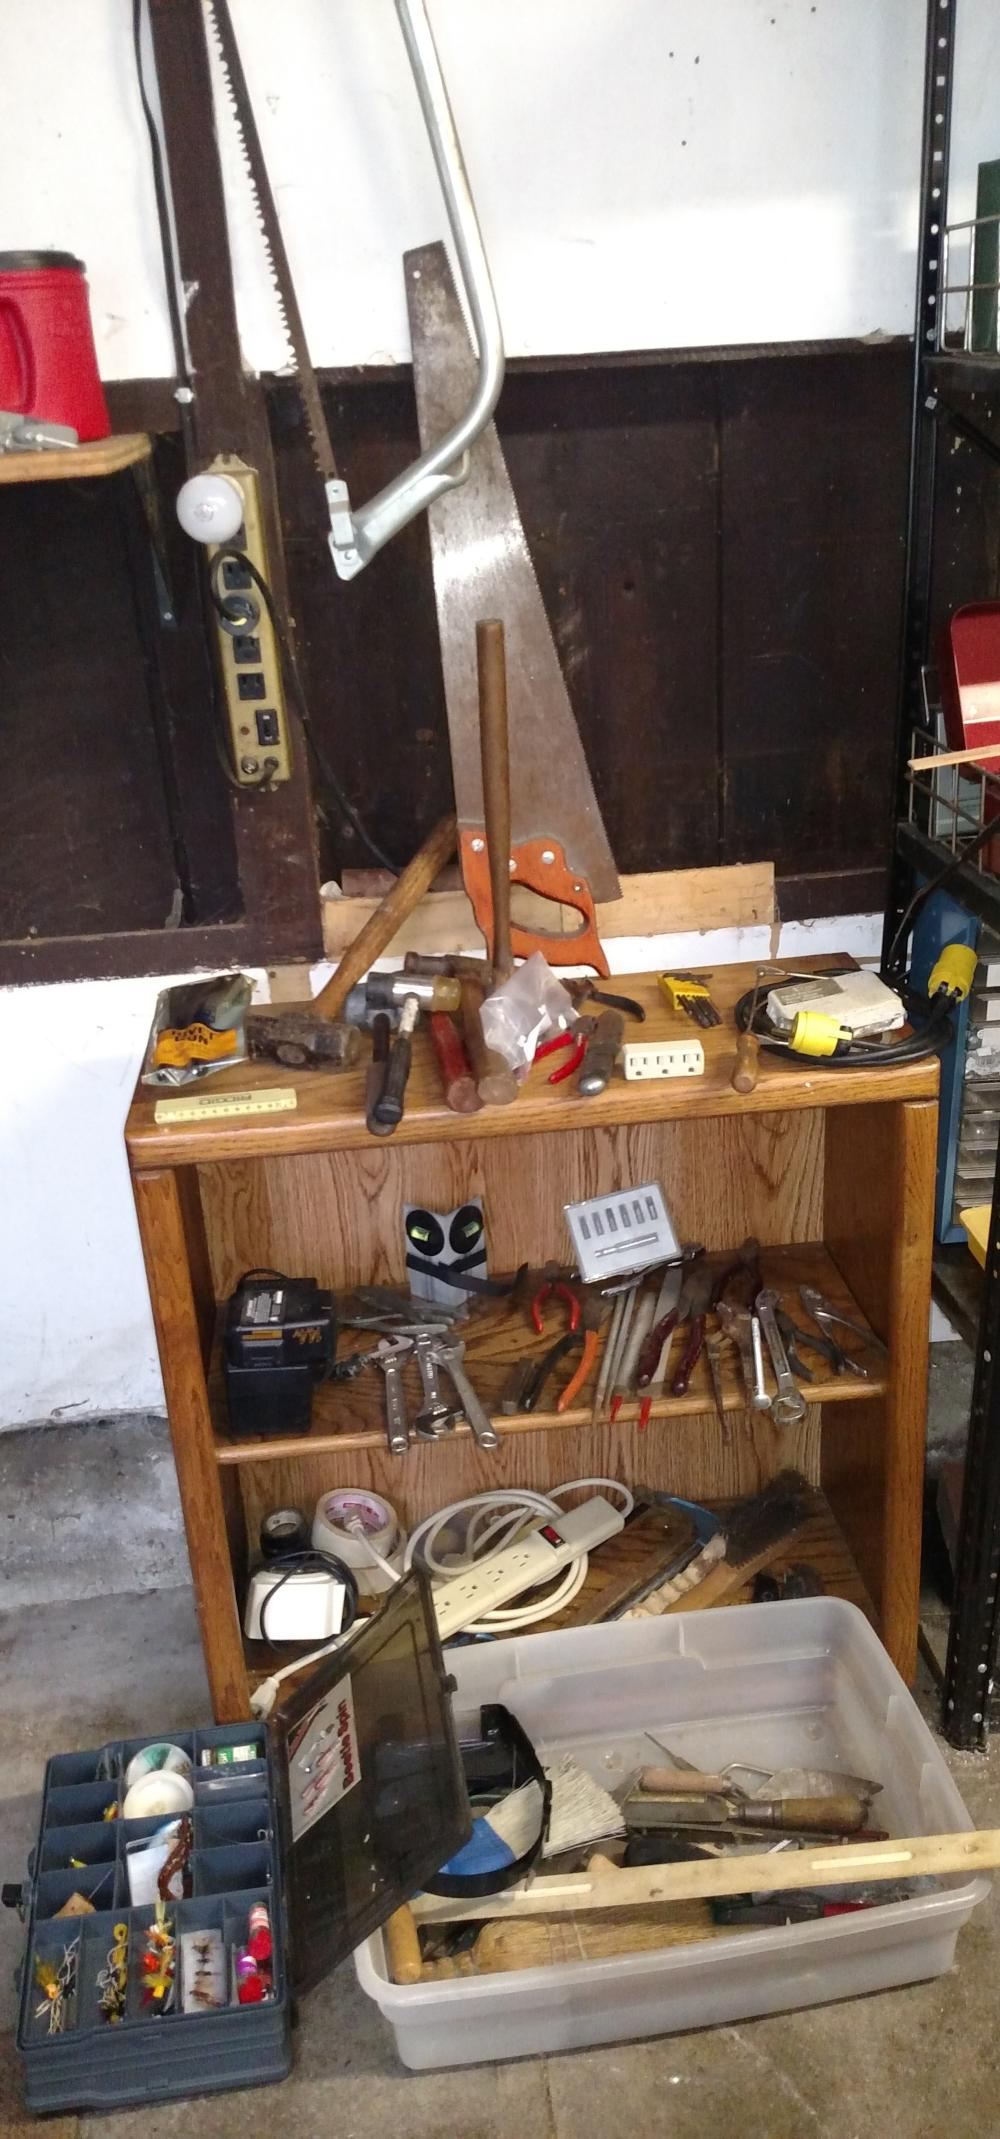 garage wall items--tackle box w/ misc fishing items, saws, wrenches, hammers, misc tools